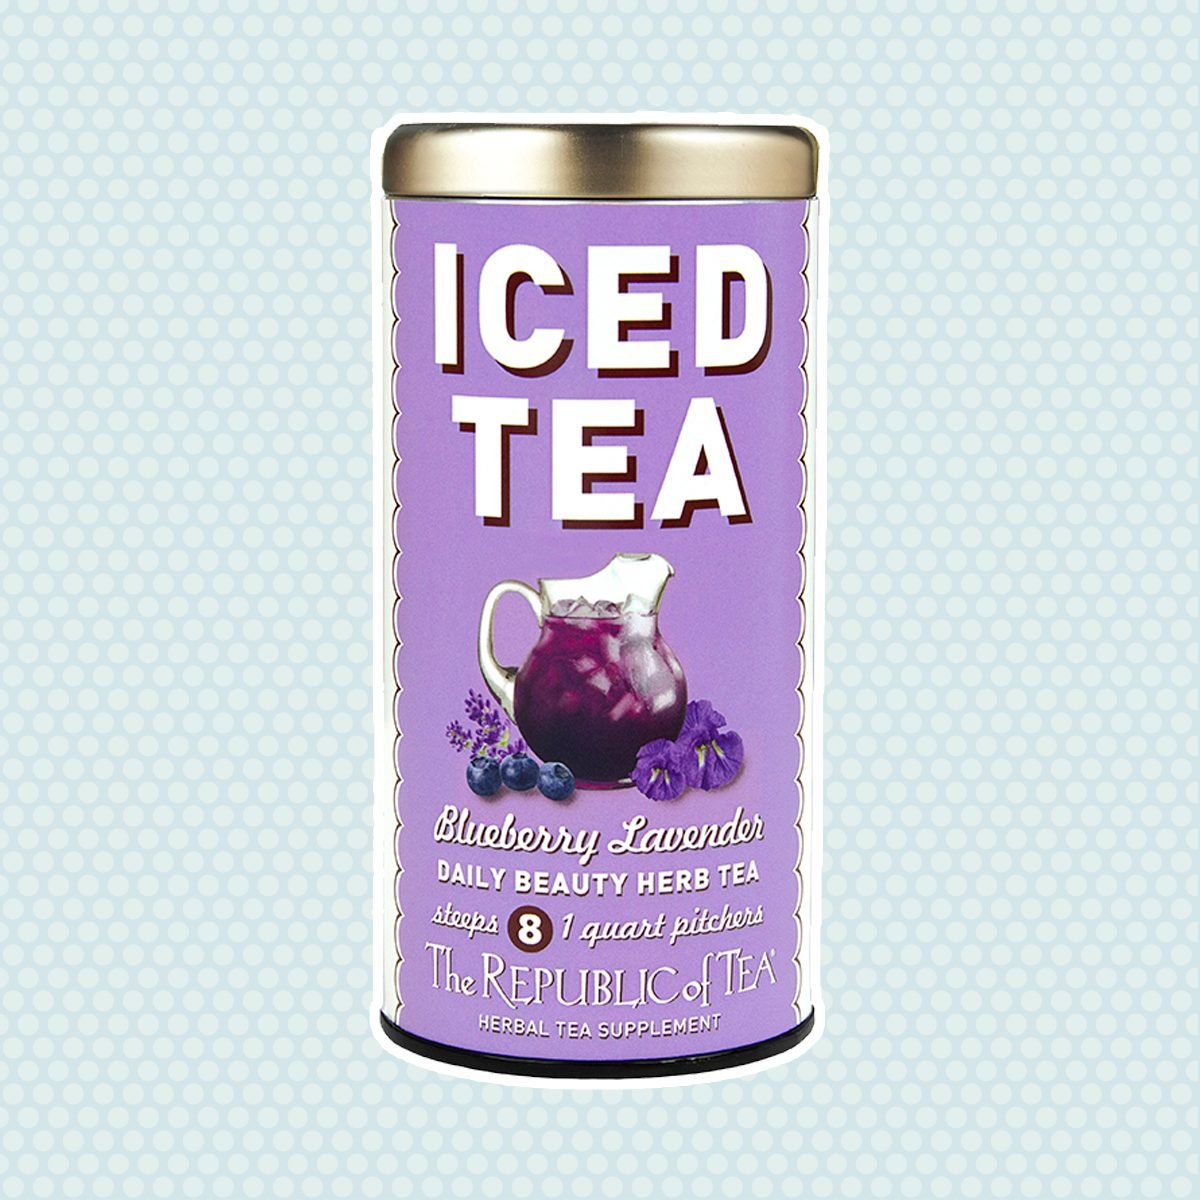 Blueberry Lavender Daily Beauty Iced Tea Pouches